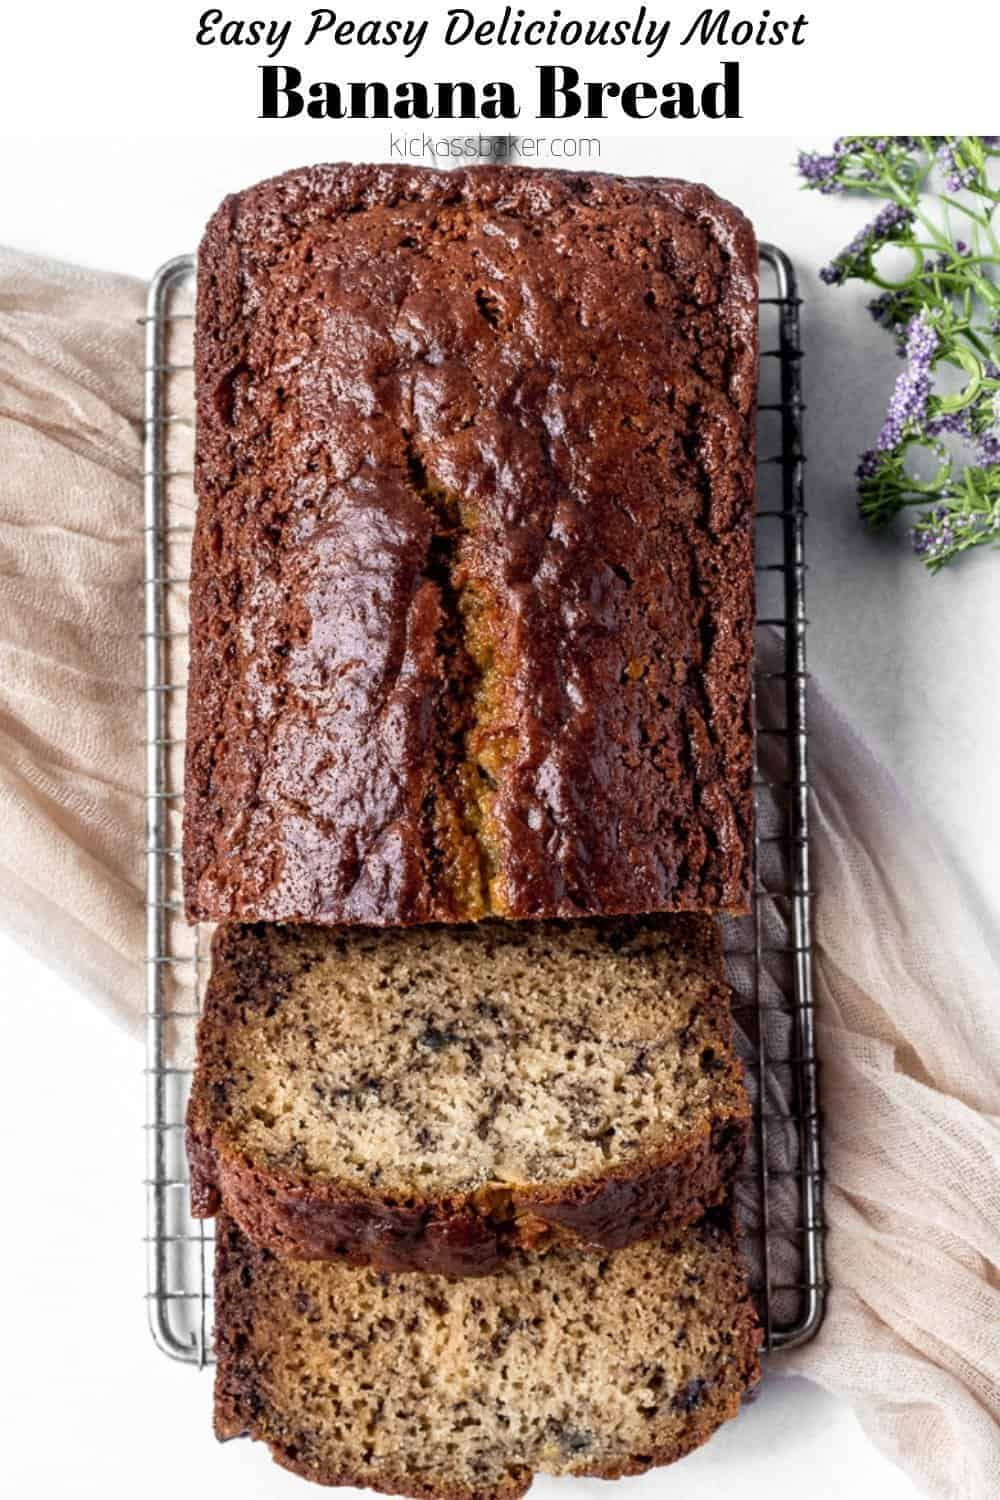 Easy Peasy Deliciously Moist Banana Bread Kickass Baker